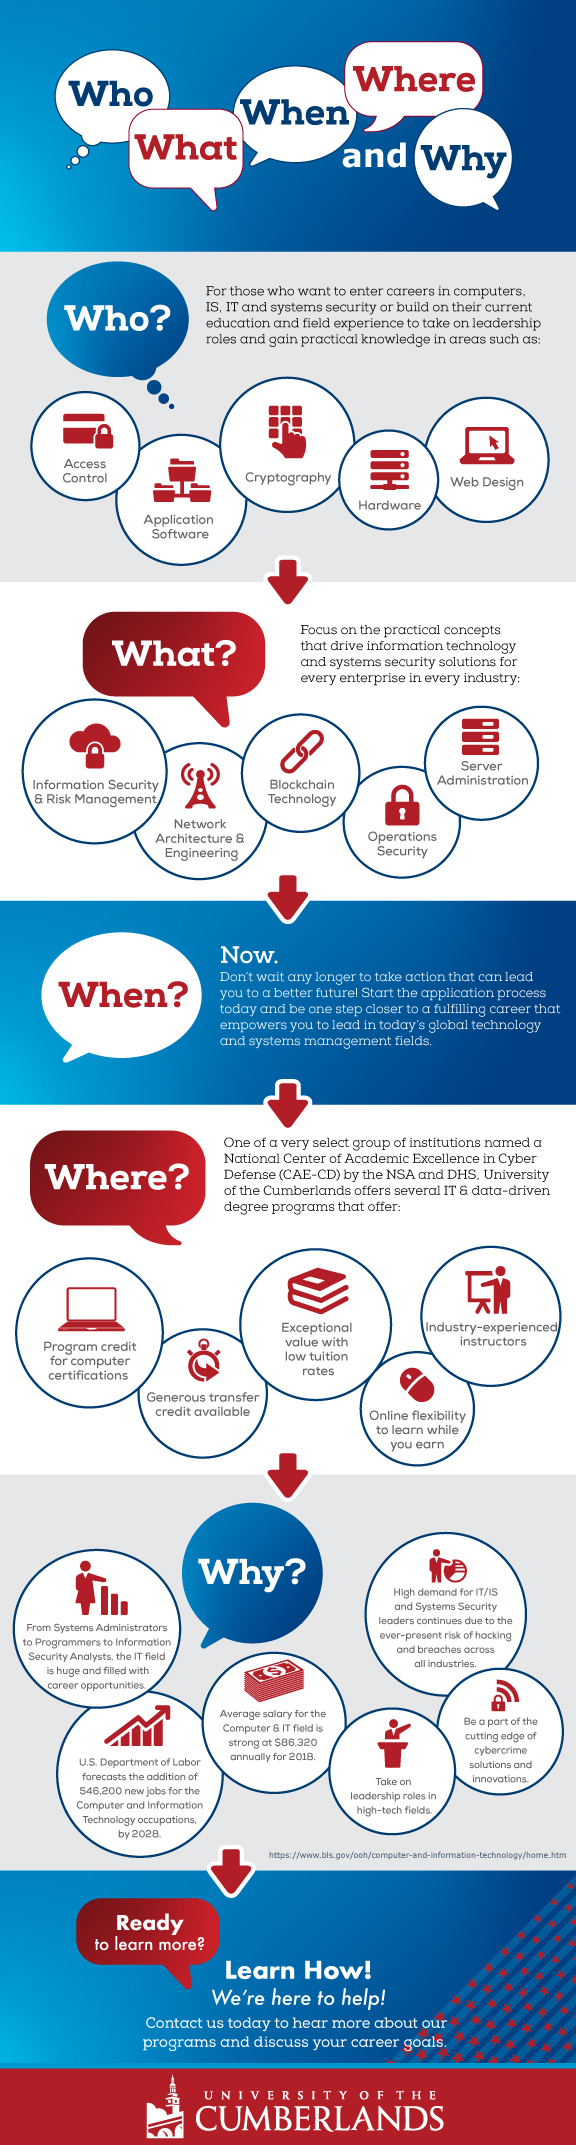 Information Technology infographic that helpyou decide if an IT career is right for you.